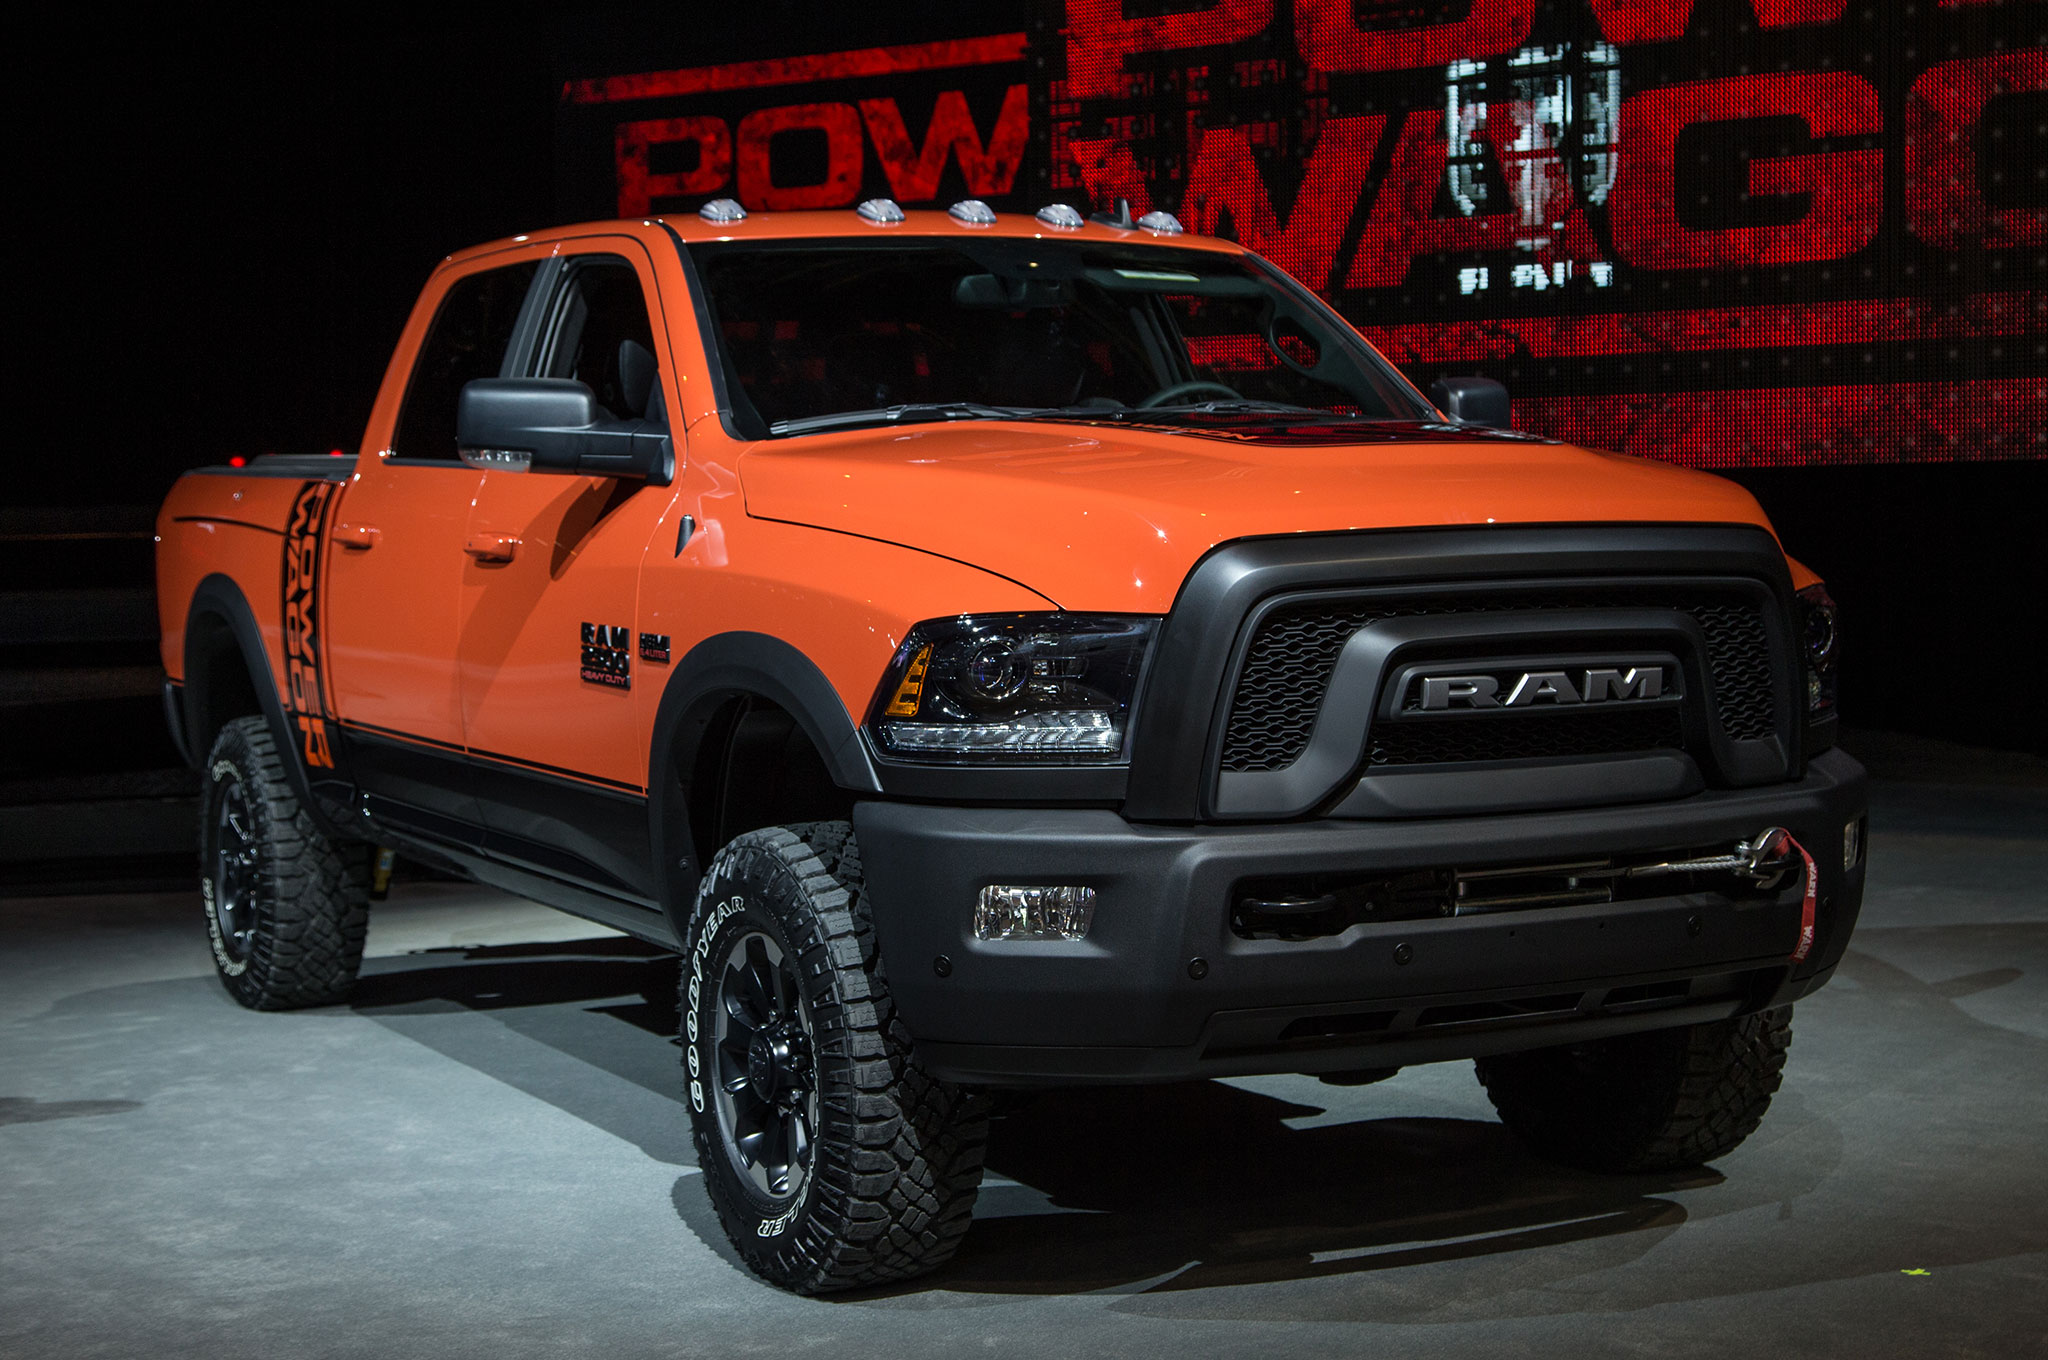 ram dually wheels new car update 2020 5th Gen Cummins Diesel ram dually wheels 2017 ram 2500 power wagon adopts a rebel like face